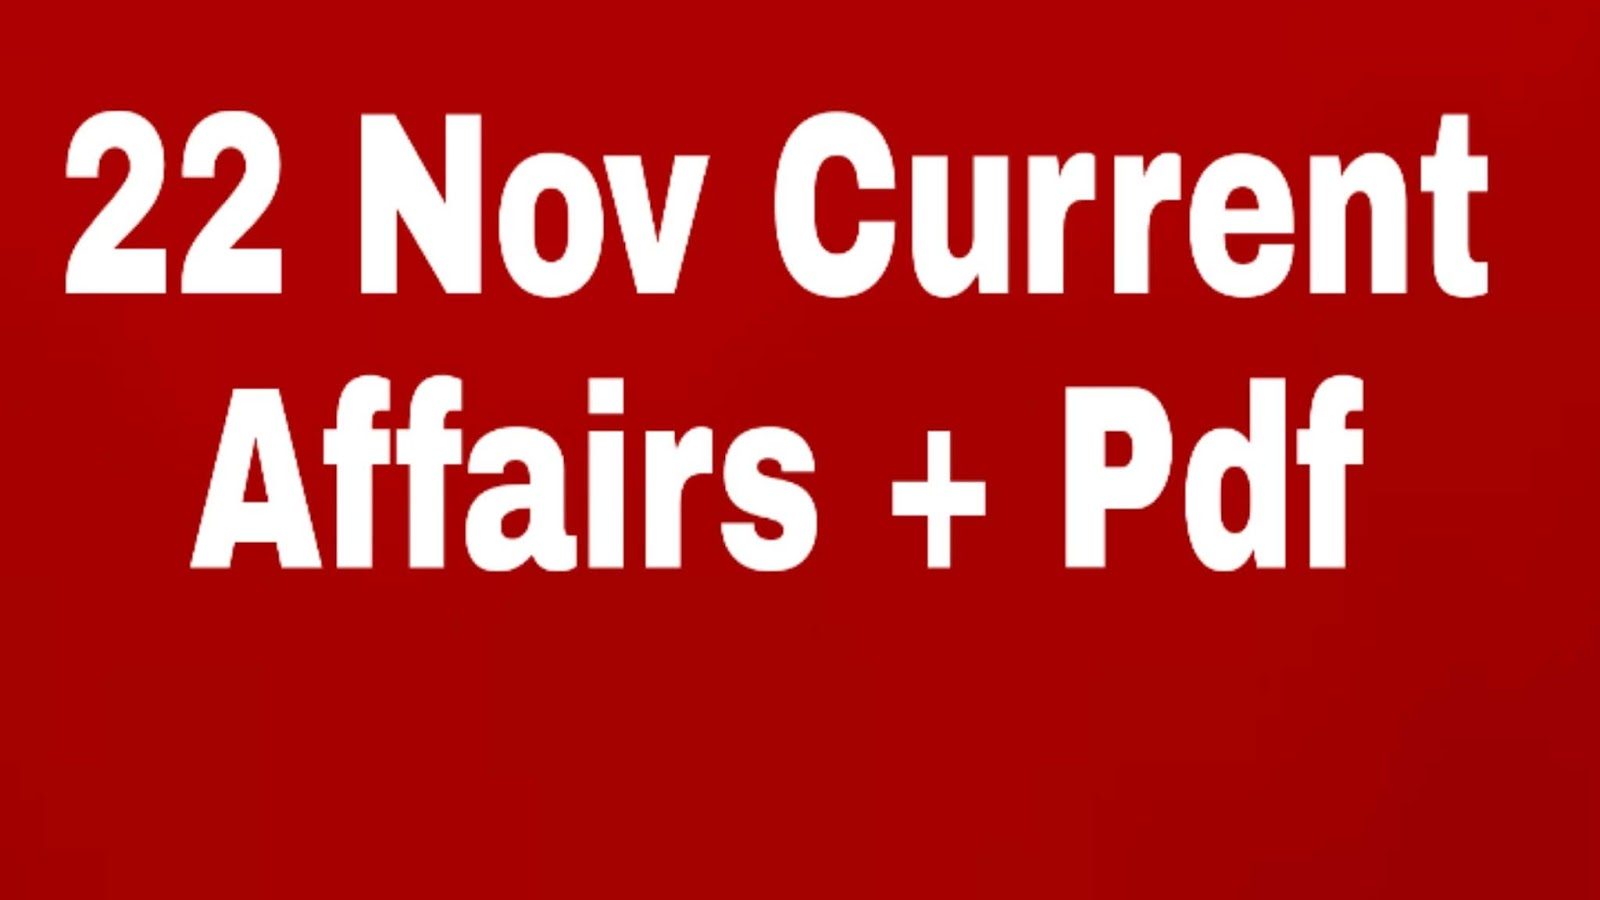 22 November Current Affairs With Pdf In Hindi For All Exams SSC / RRB NTPC / Bihar S.I